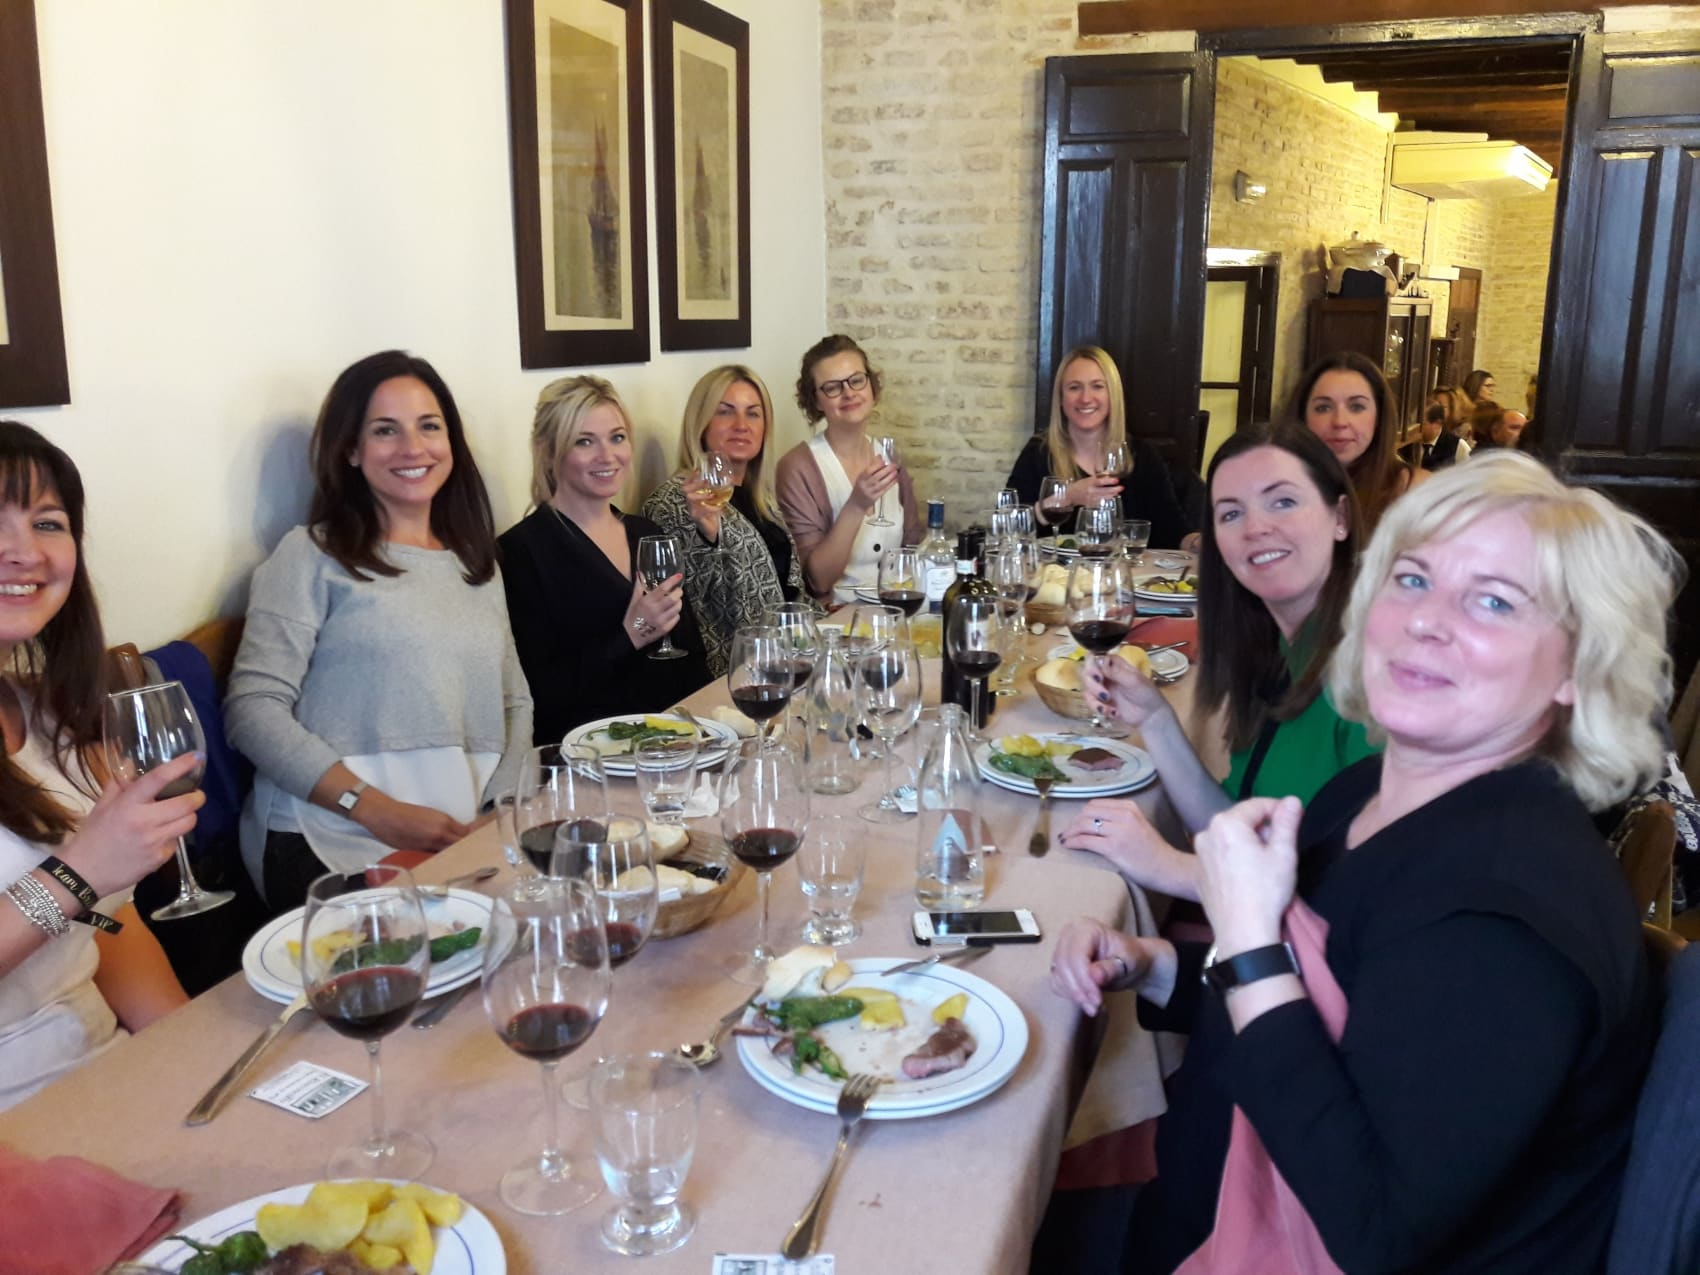 Wine tasting lunch at El Rinconcillo, Seville, Spain